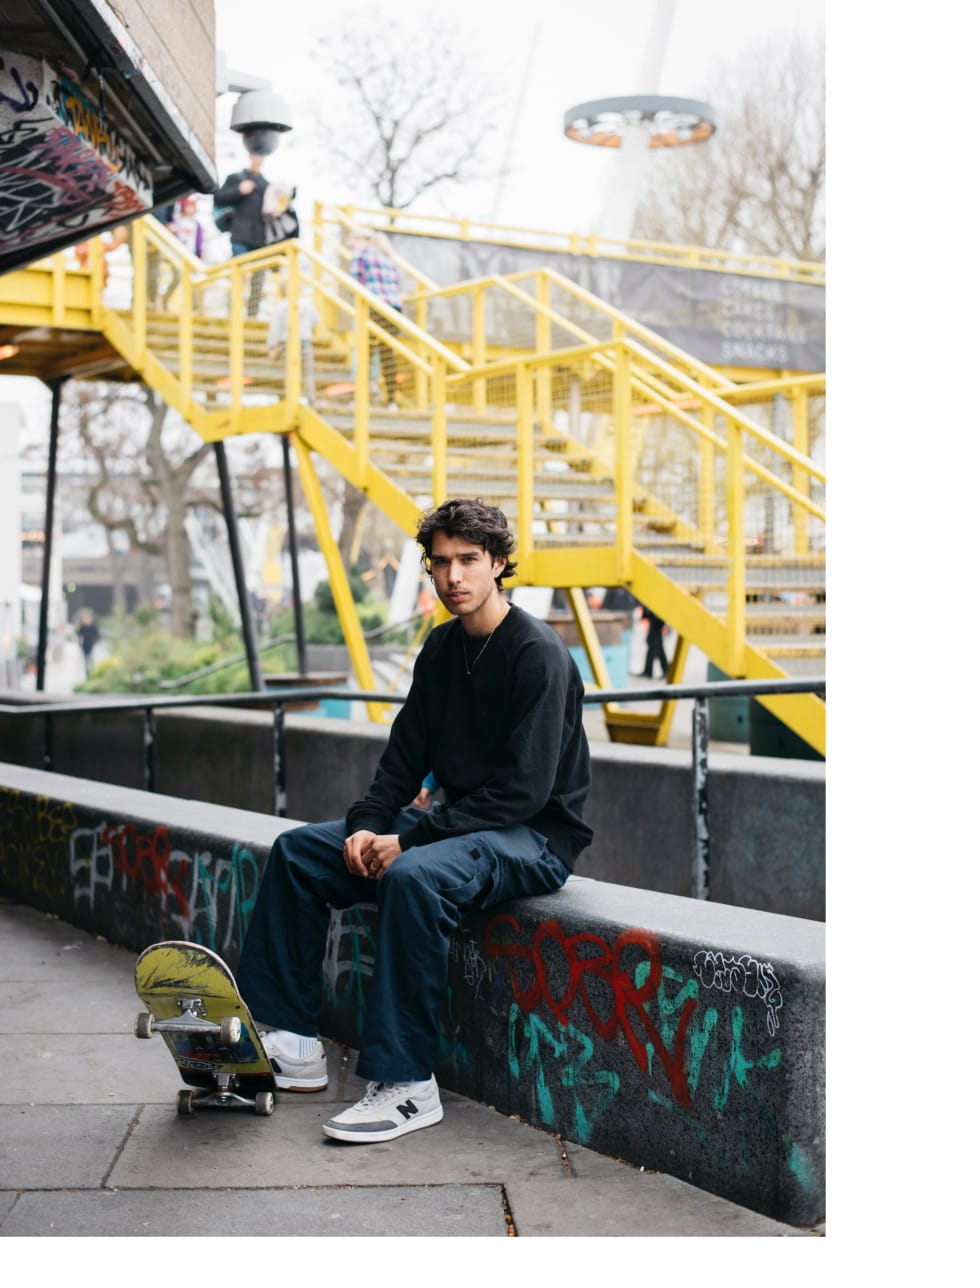 Tom Knox at South Bank. Featured for the New Balance 440 skate shoe.